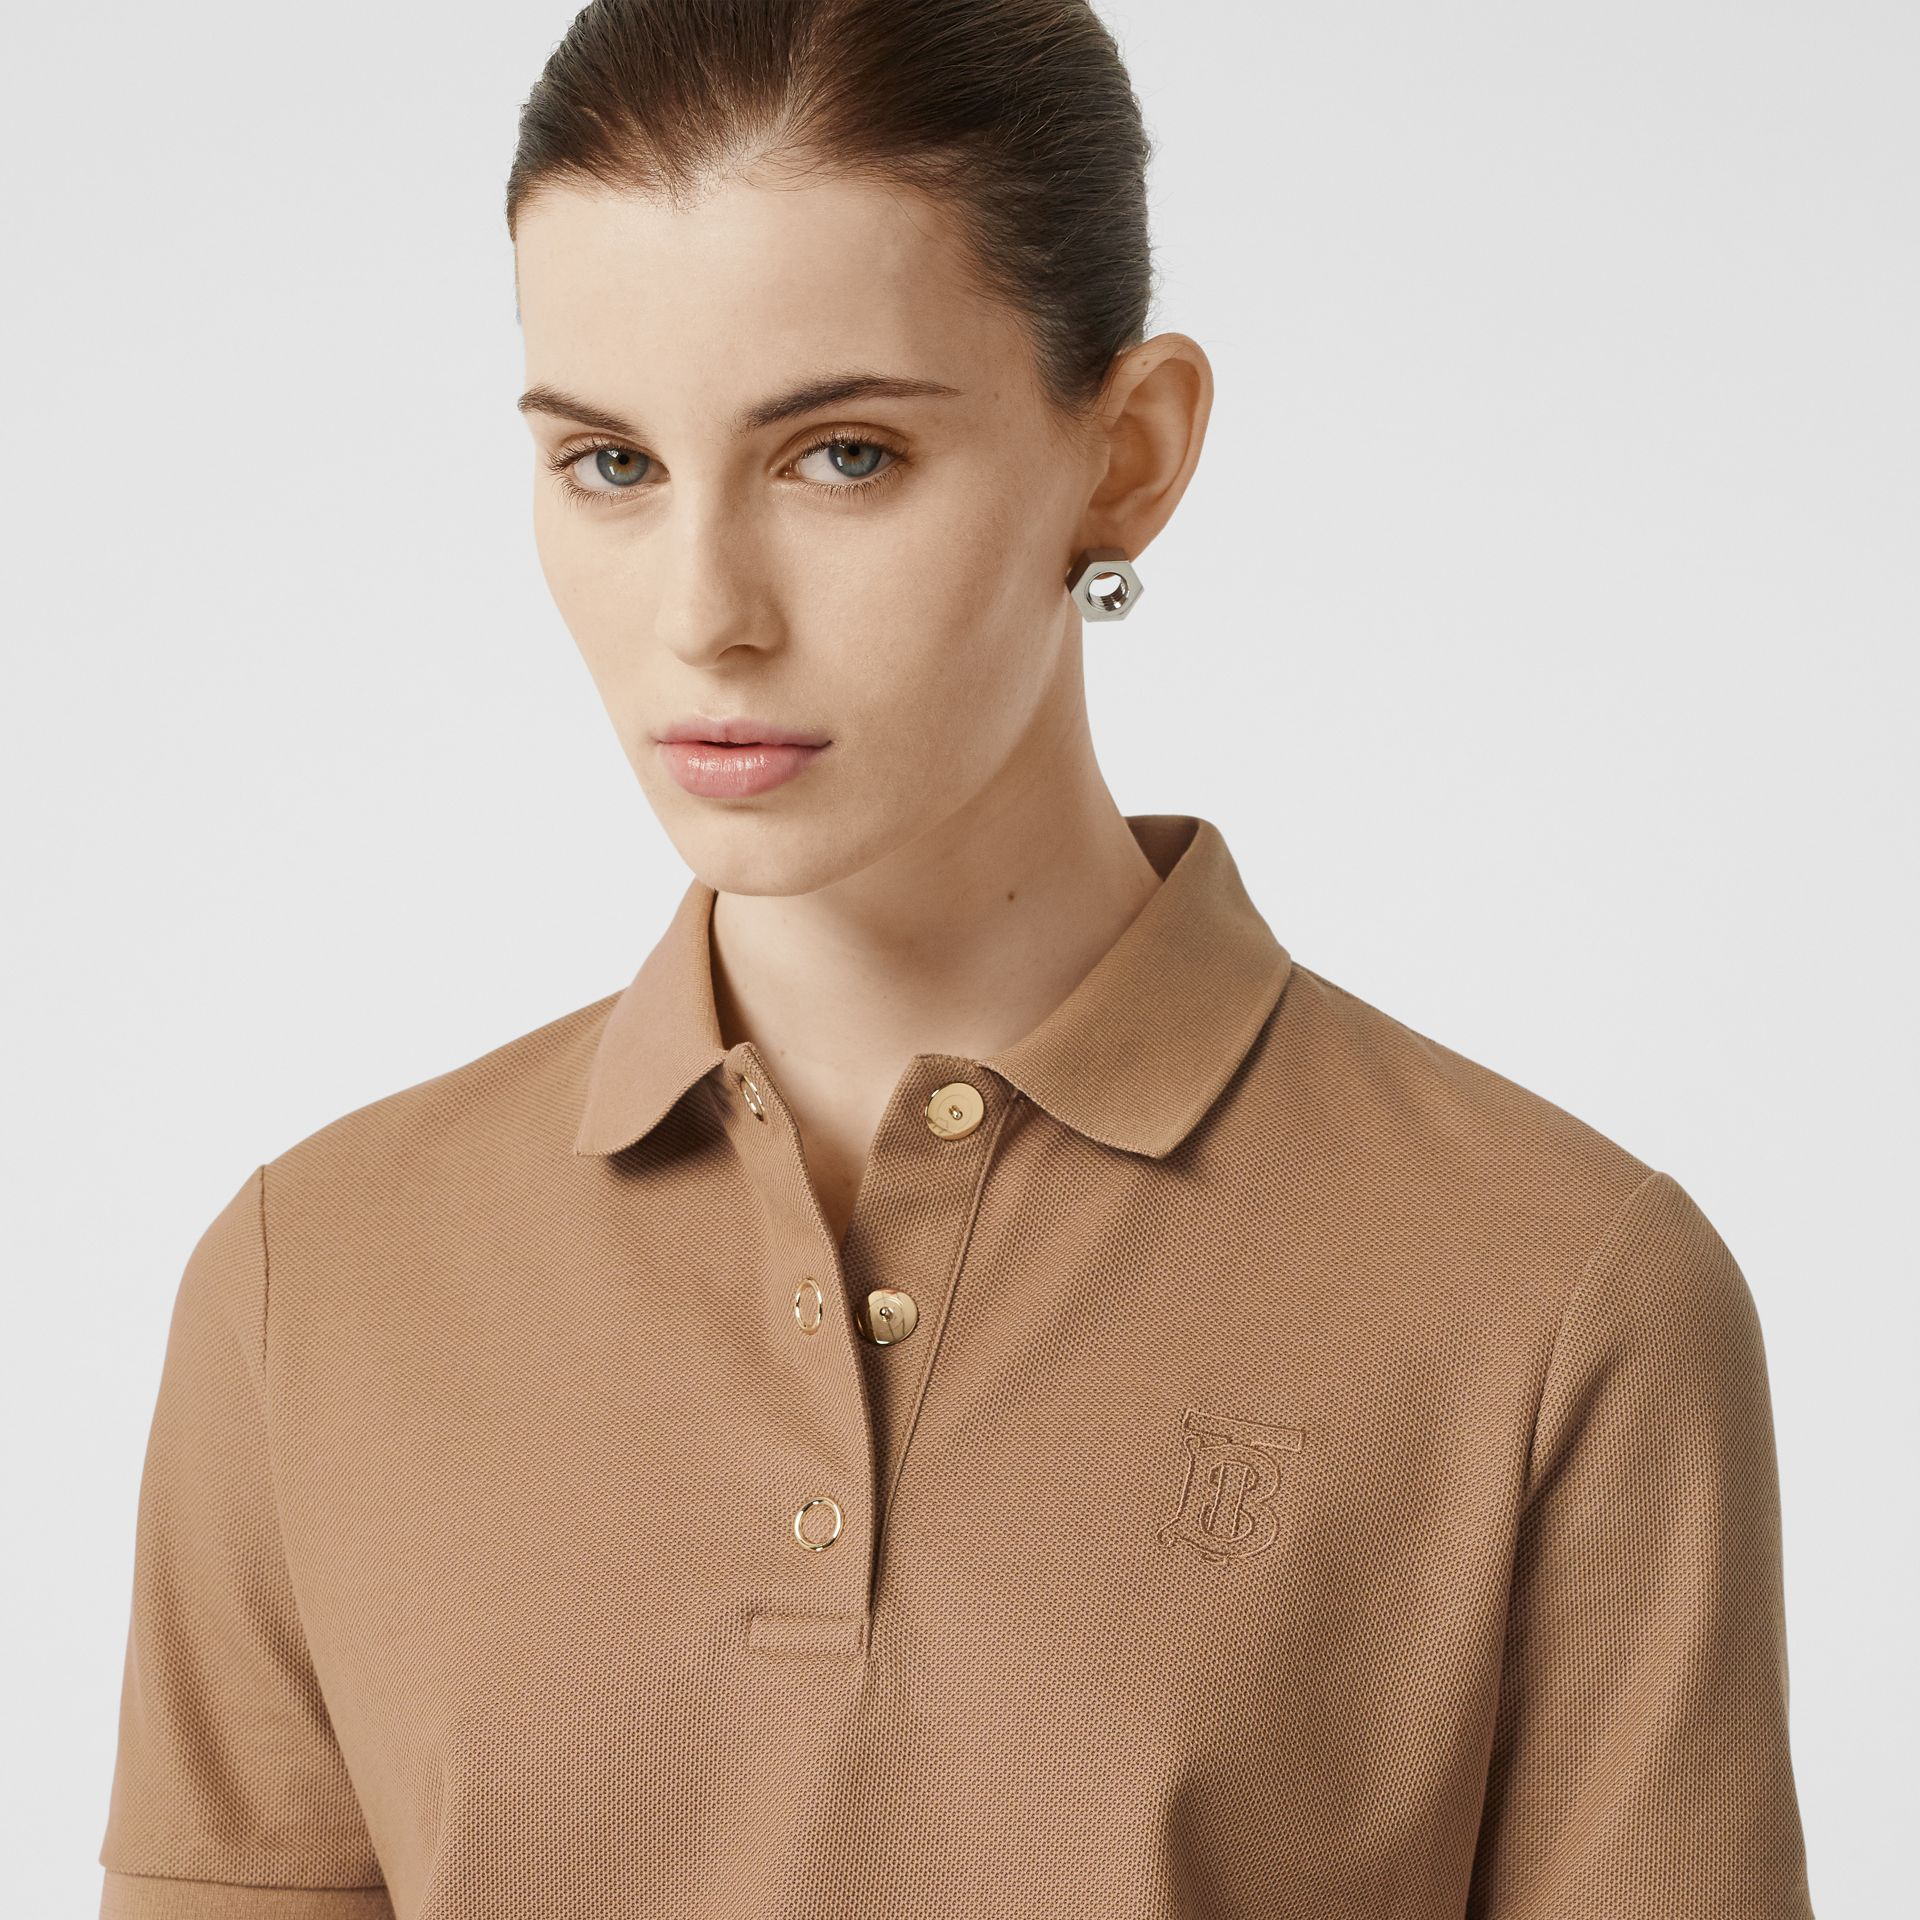 Monogram Motif Cotton Piqué Polo Shirt in Camel - Women | Burberry United Kingdom - gallery image 1